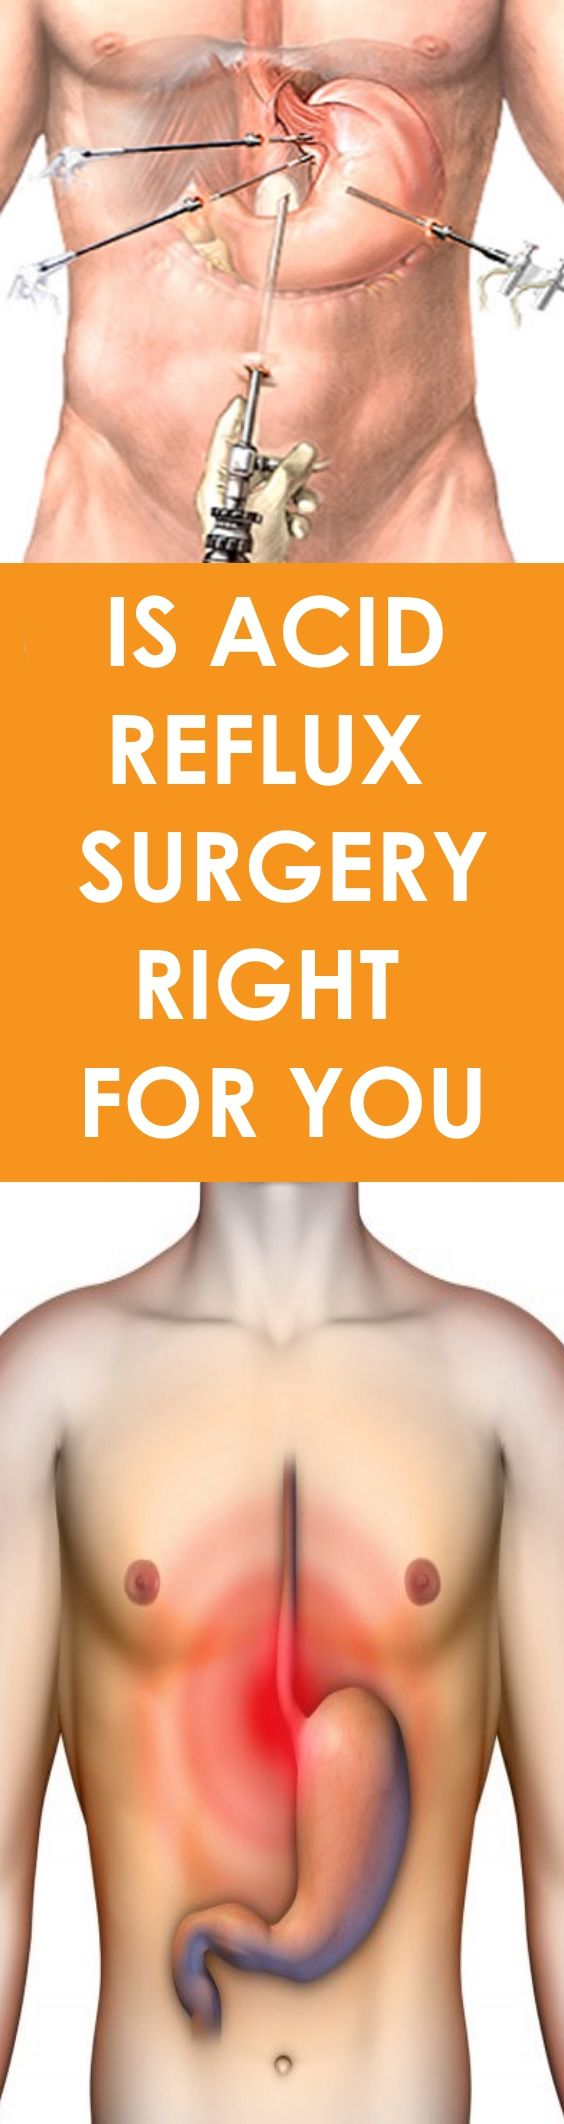 is acid reflux surgery right for you